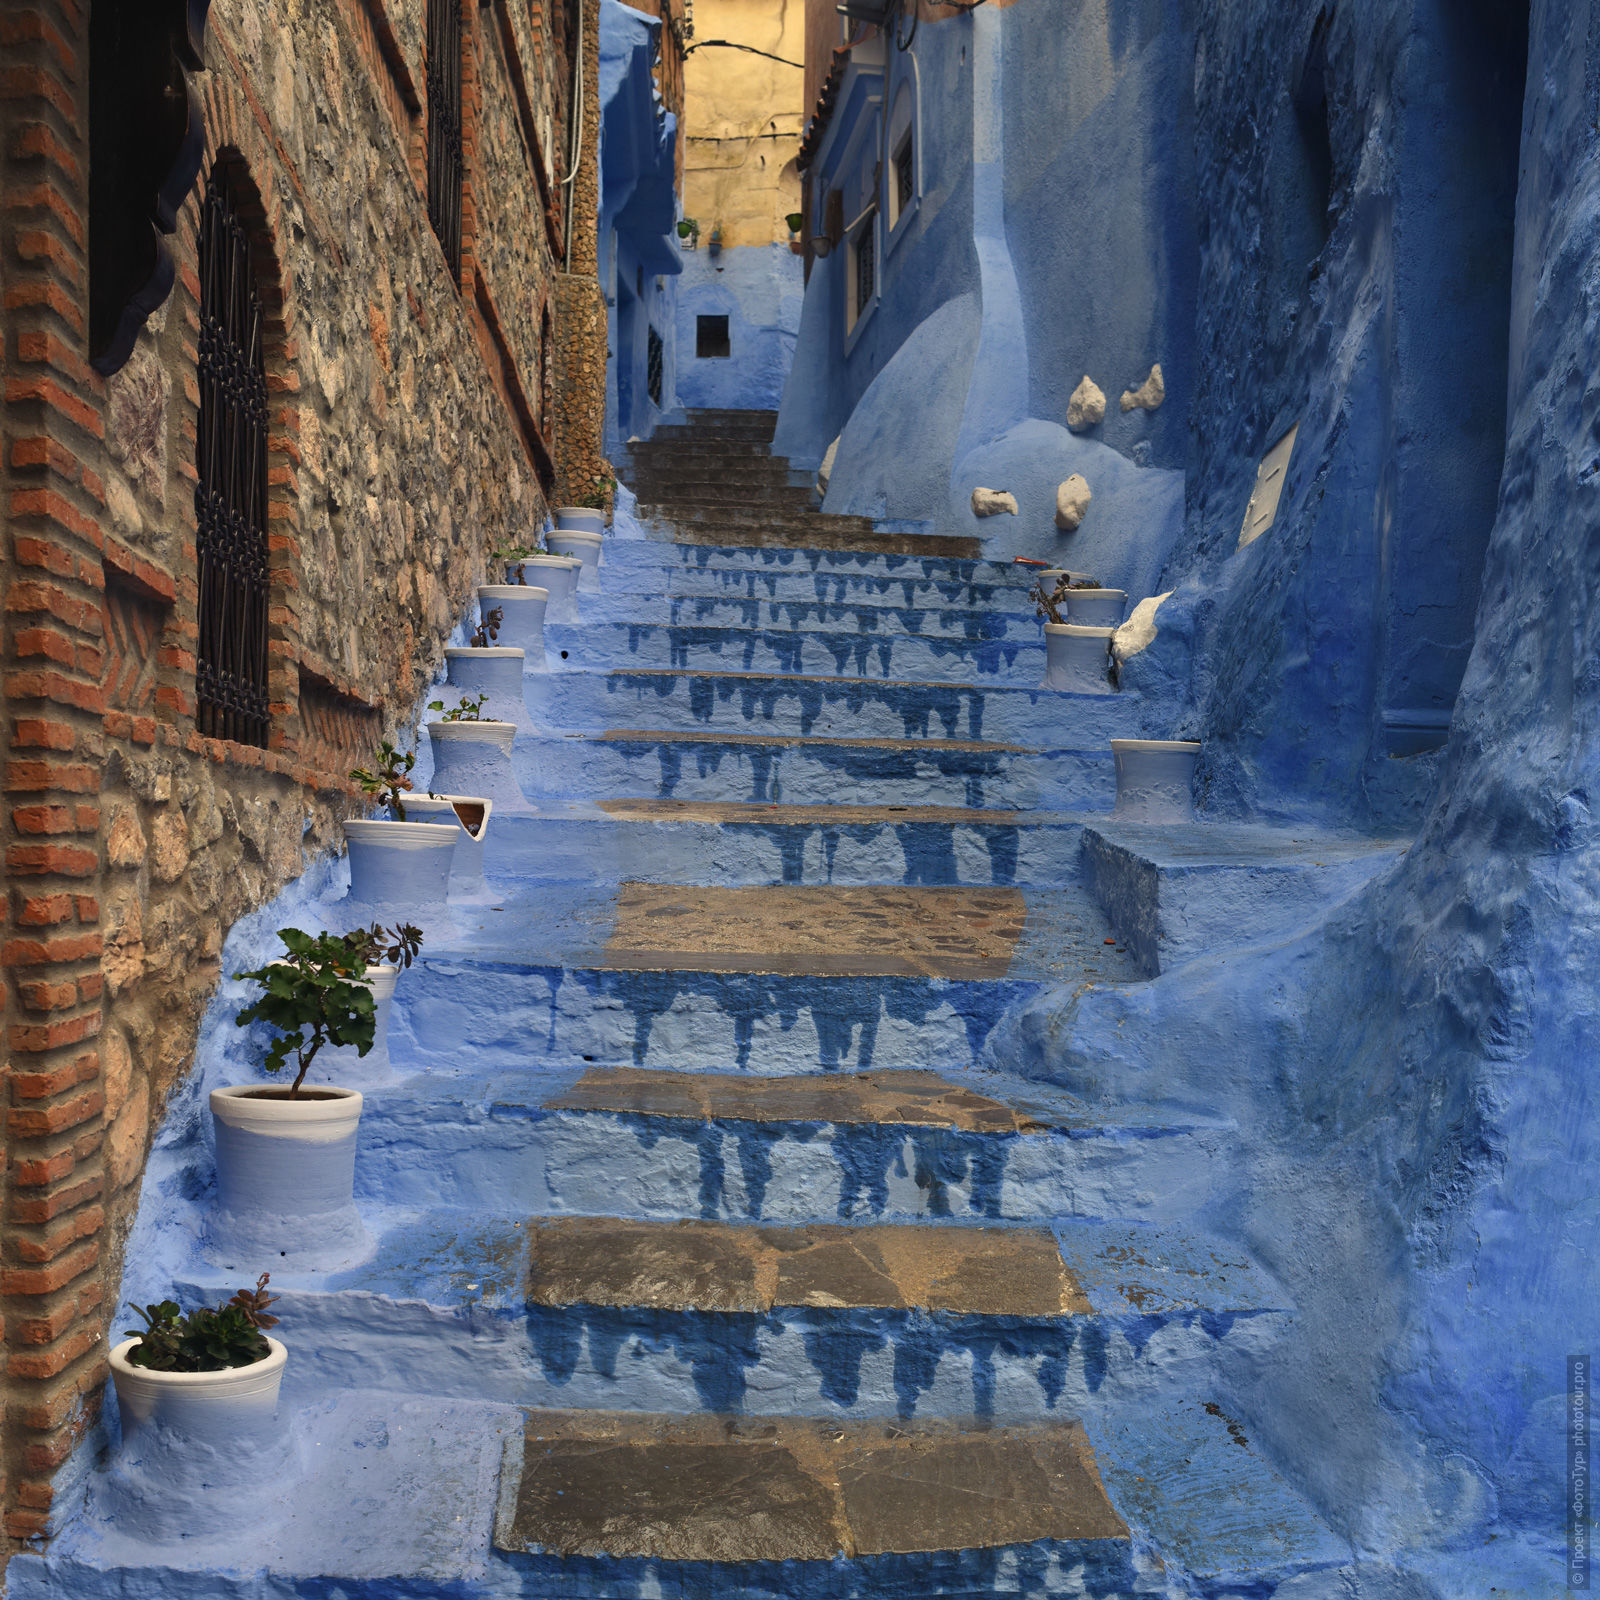 Stairs of the medina of Chefchaouen, Morocco, photo tour of Morocco, October 2018.